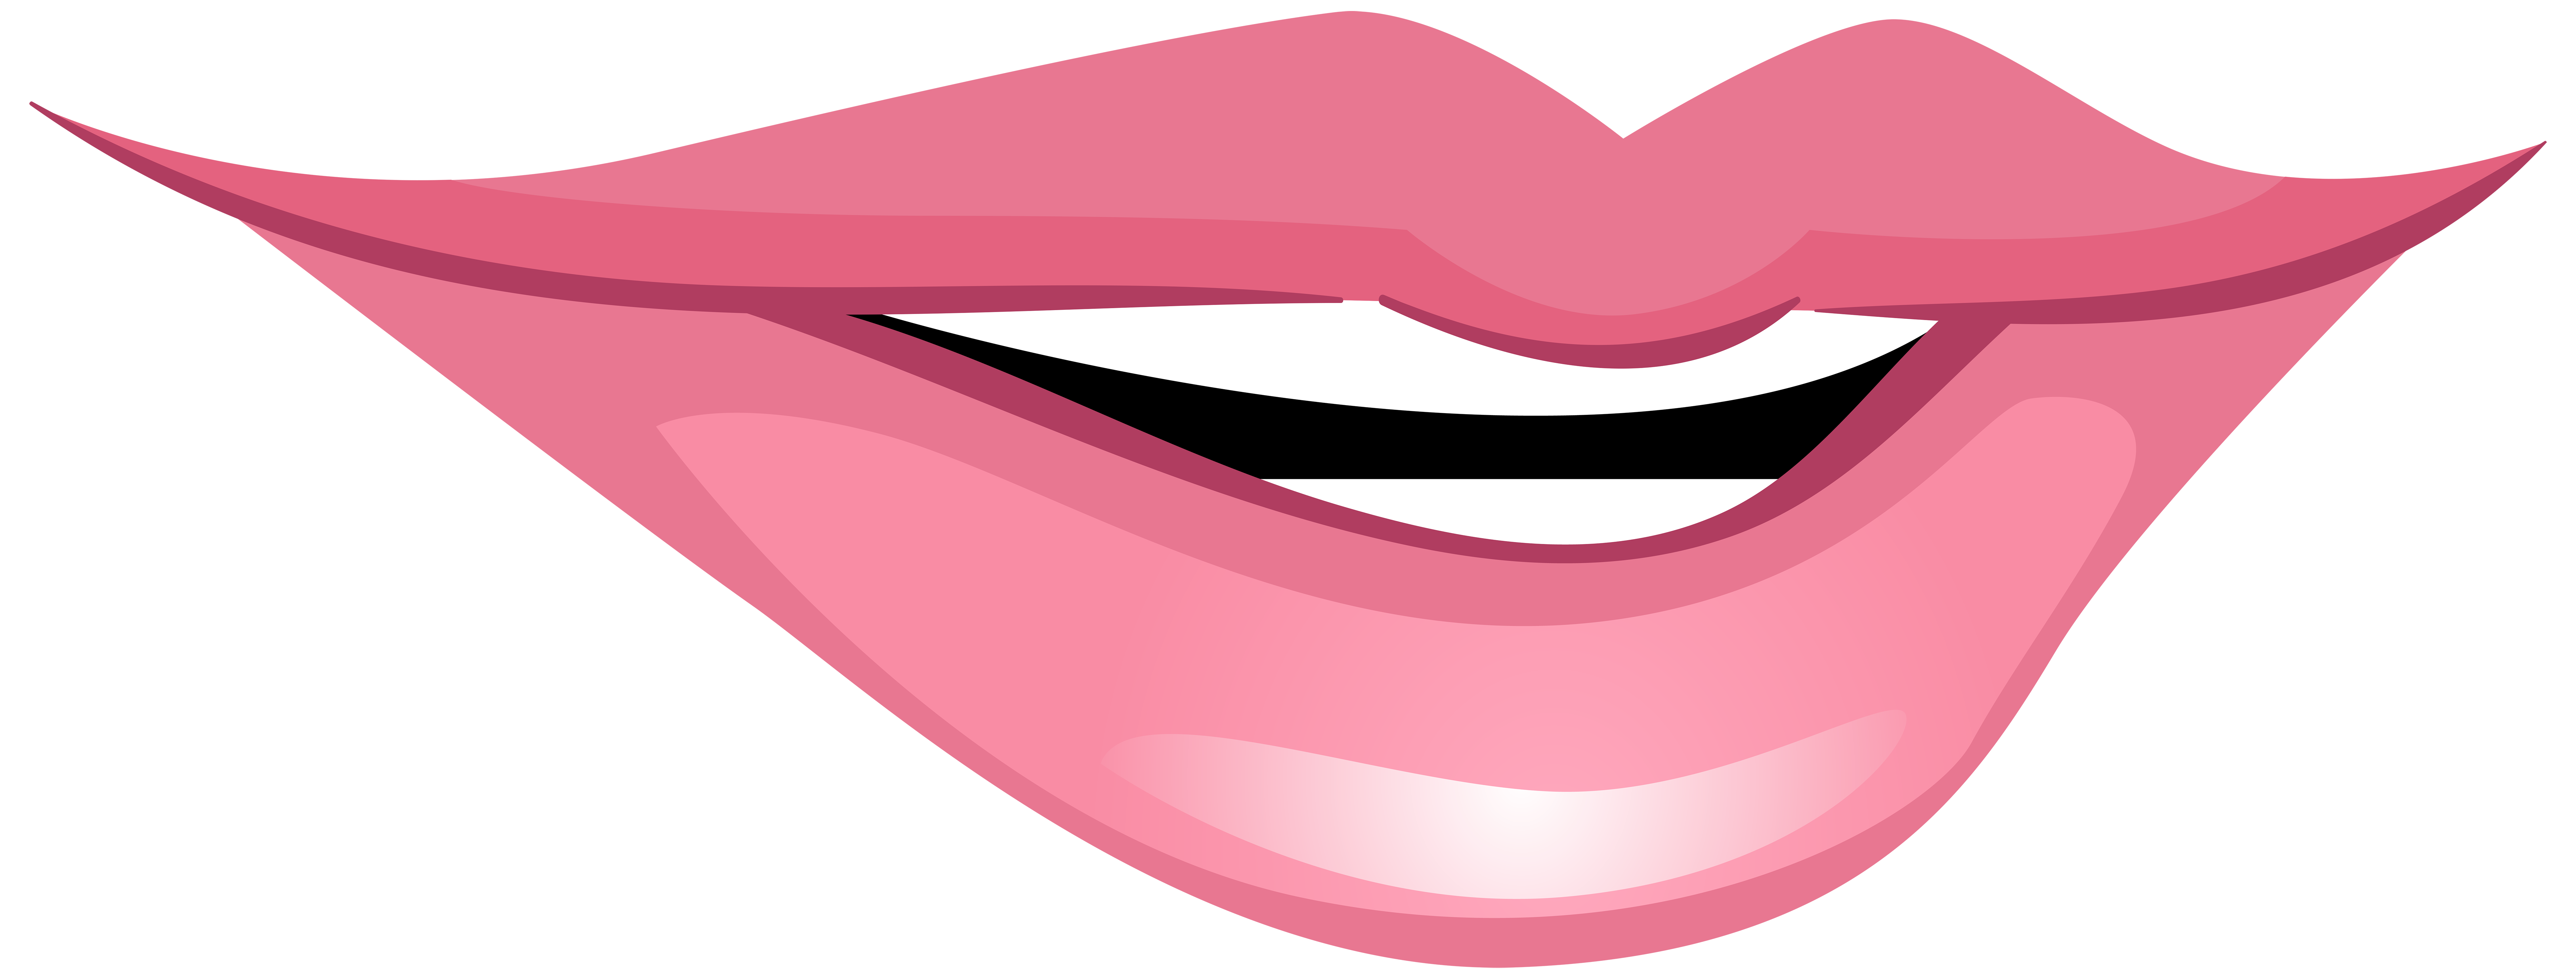 Lips clipart straw Mouth Clip Smiling Pink Smiling